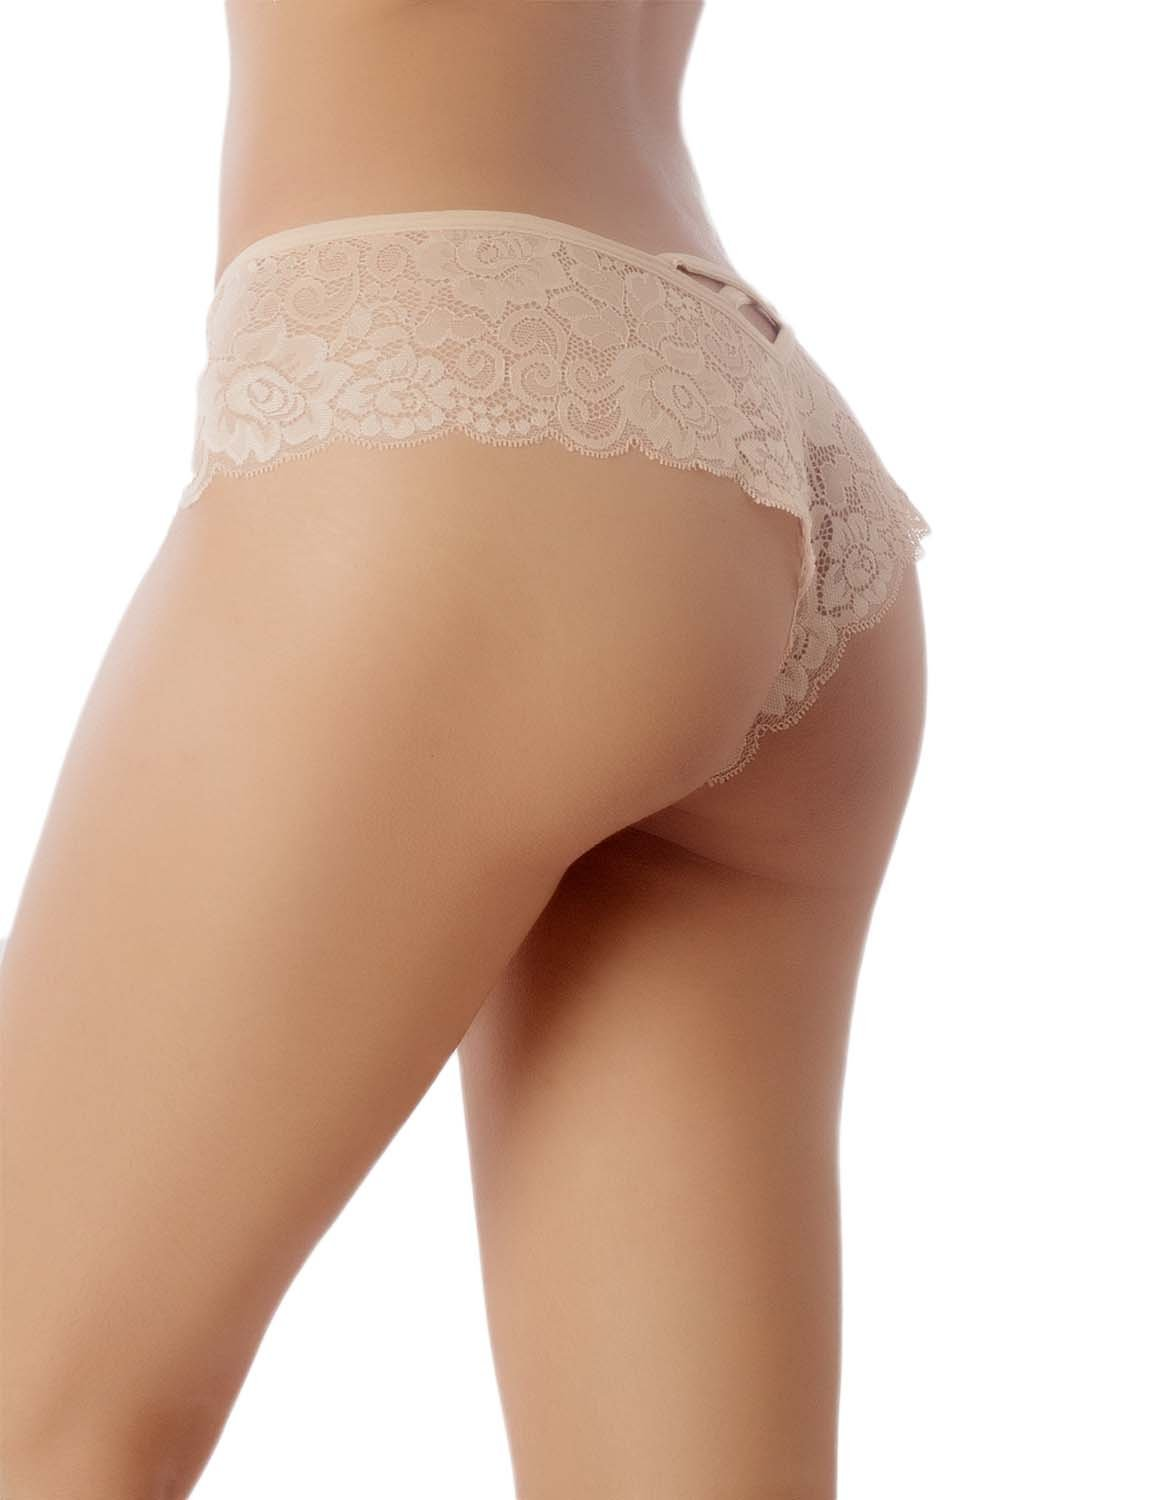 Lace See-Through Low-Waist Underwear